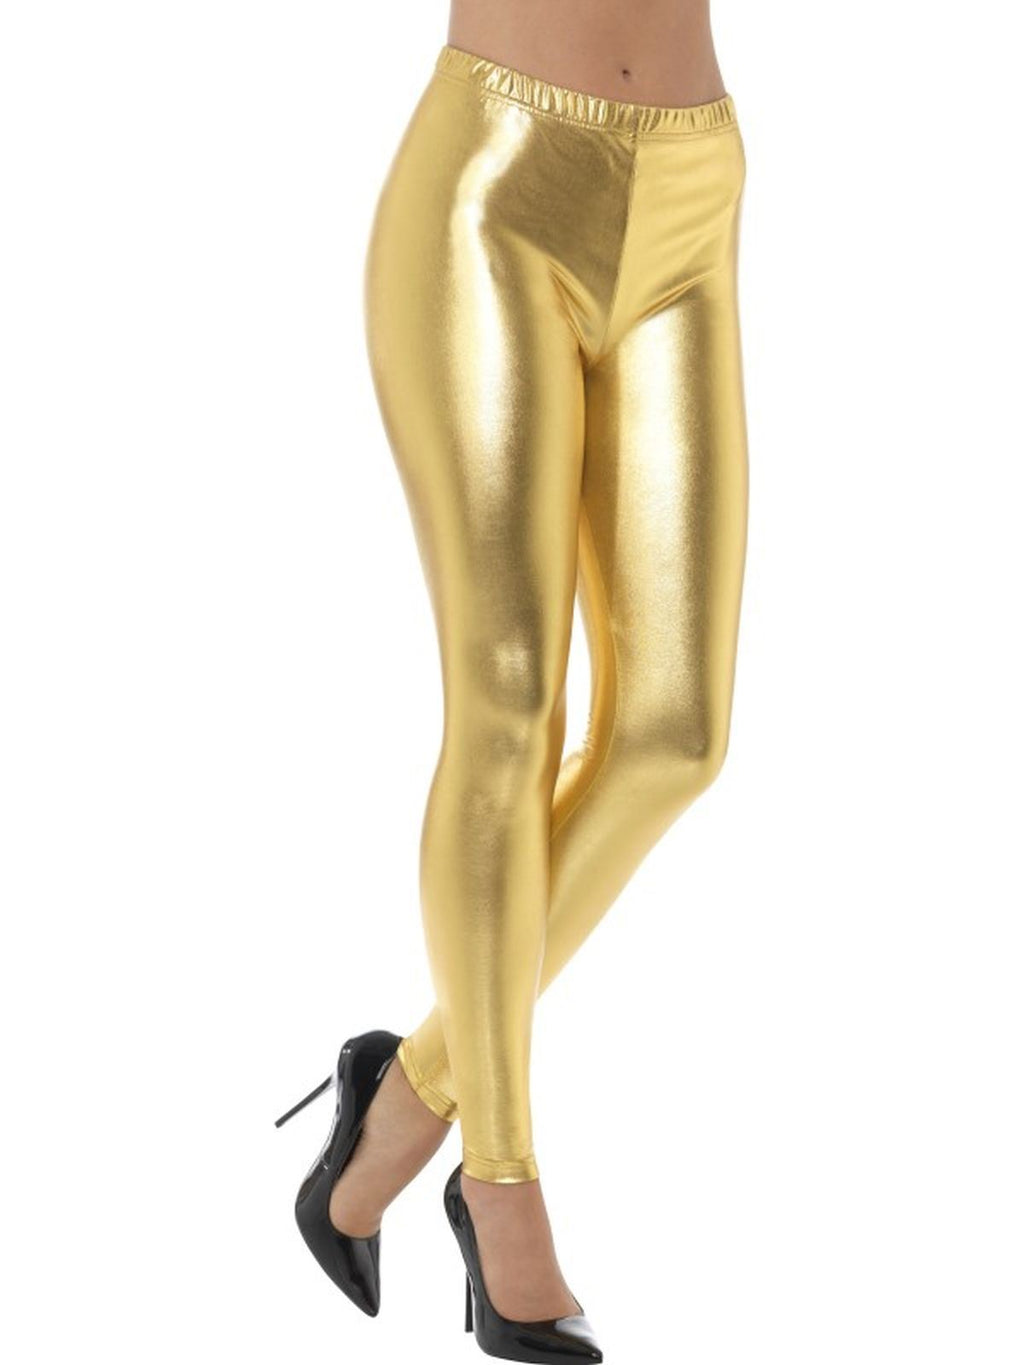 80's Metallic Disco Leggings Gold women's Fancy Dress